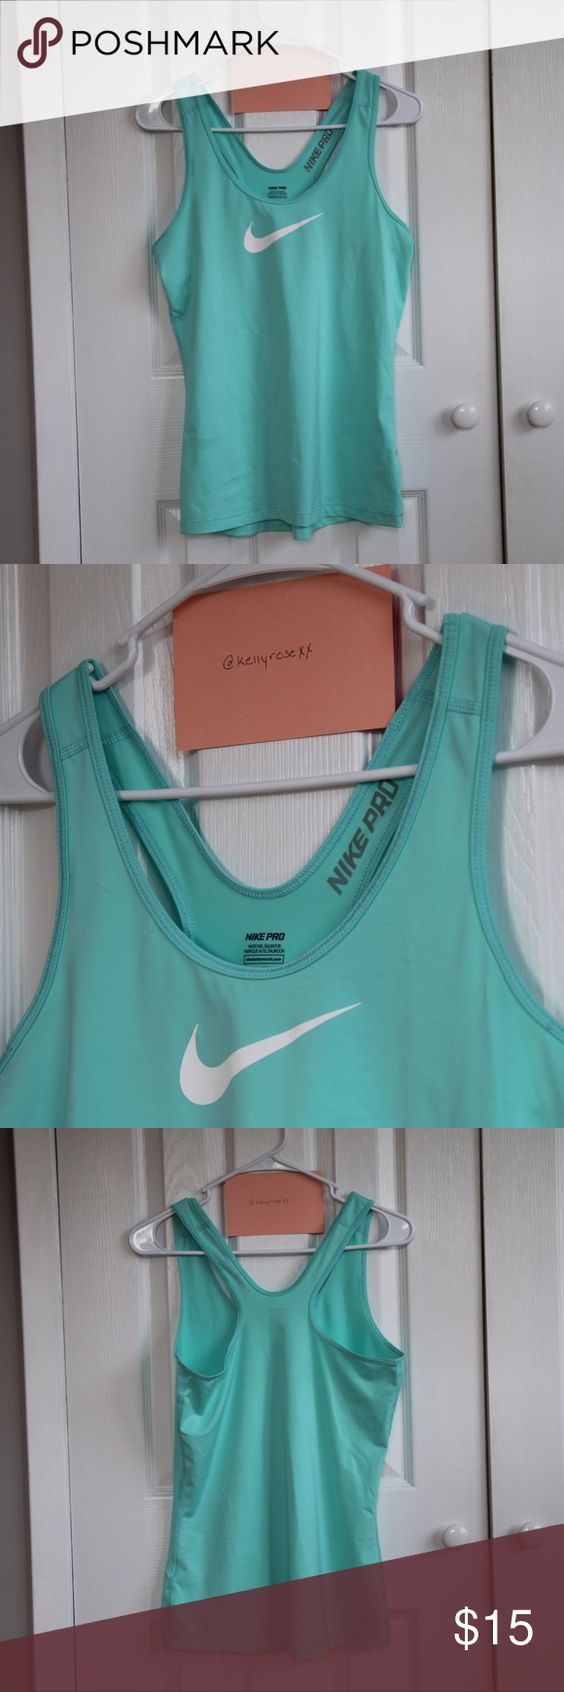 Nike Pro: Dri-fit Tank Top This tank top is perfect for your daily workout or to wear as a stylish shirt under a denim jacket! Nike Tops Tank Tops